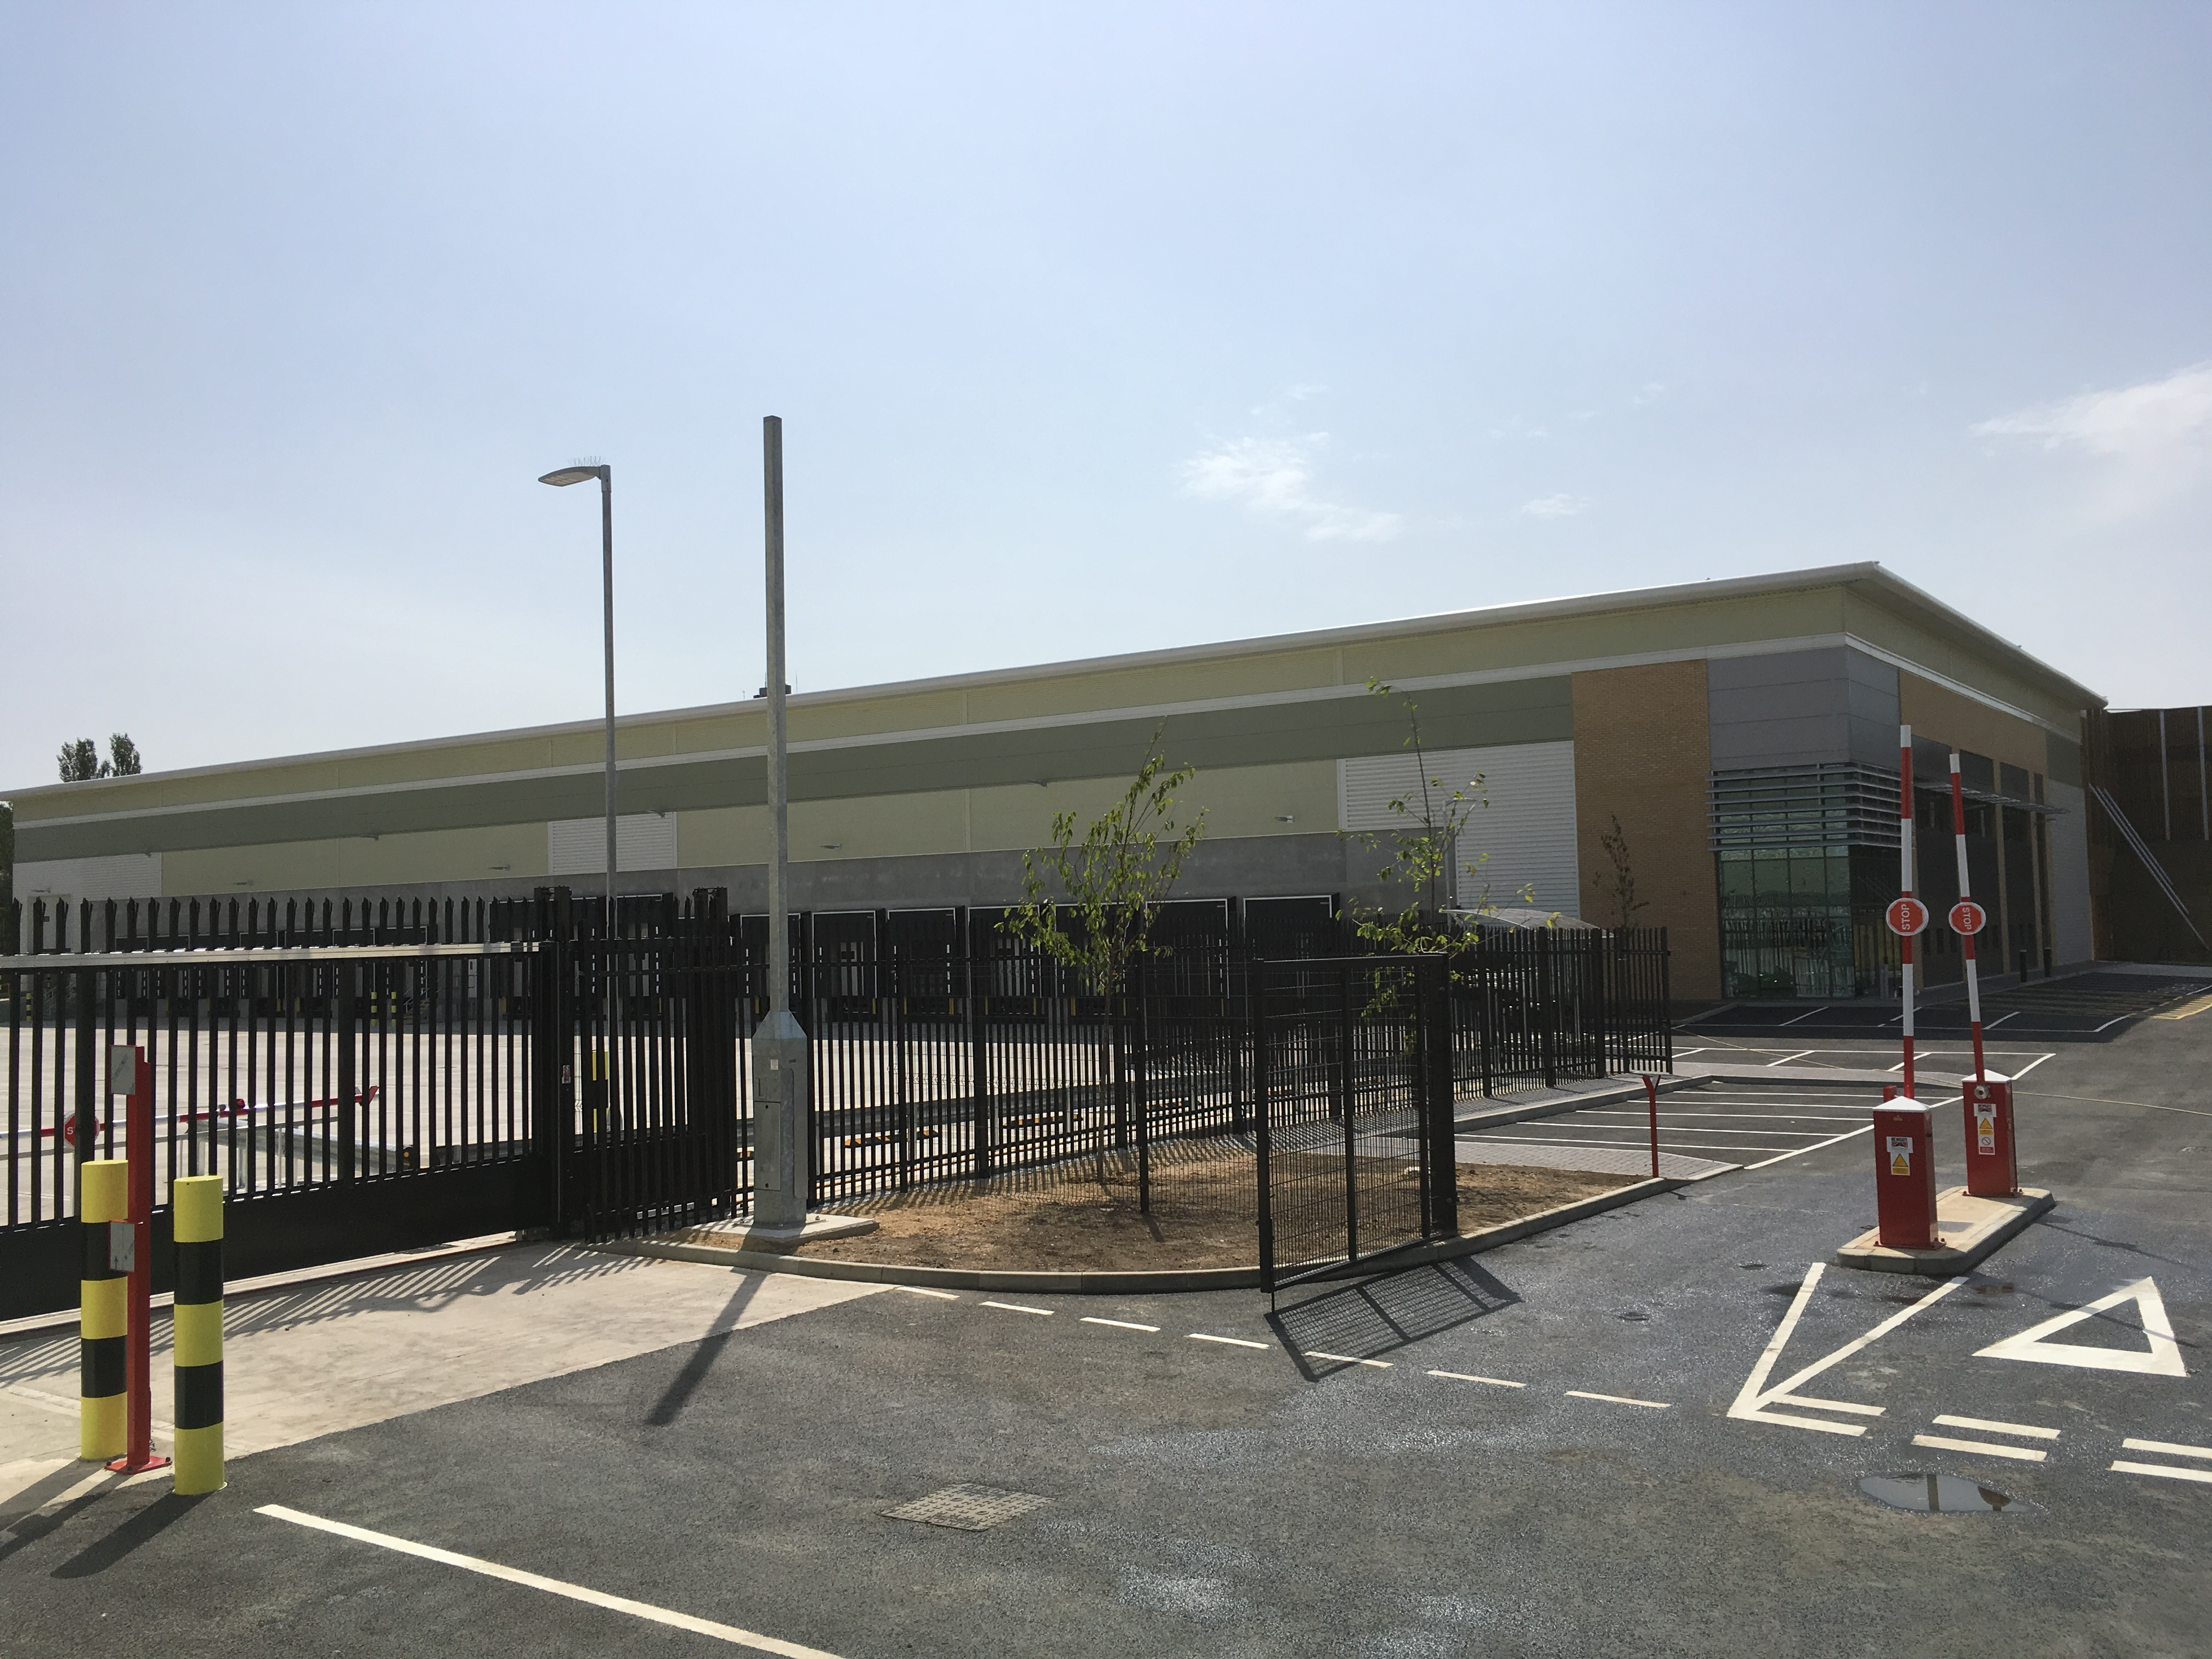 John Lewis Relocates in New Facility in Southampton